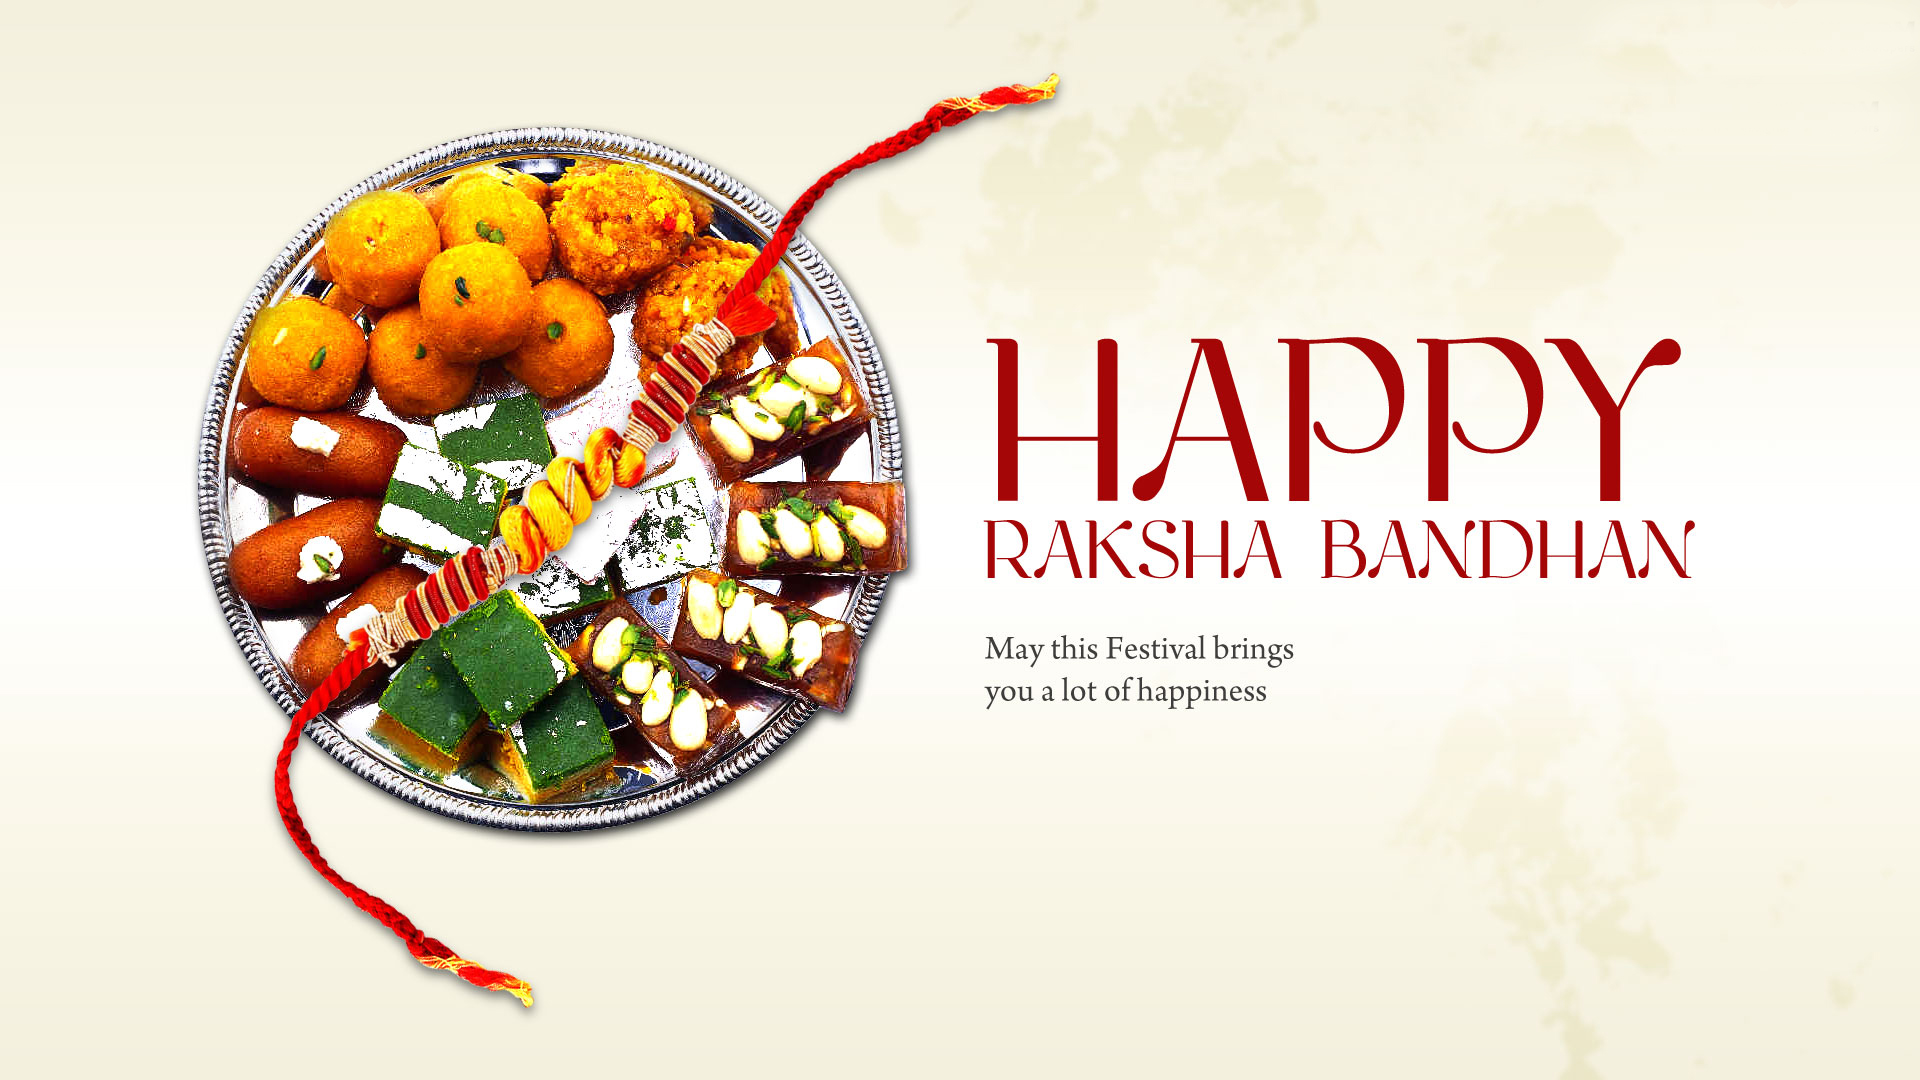 raksha bandhan wishes download free cool wallpaper